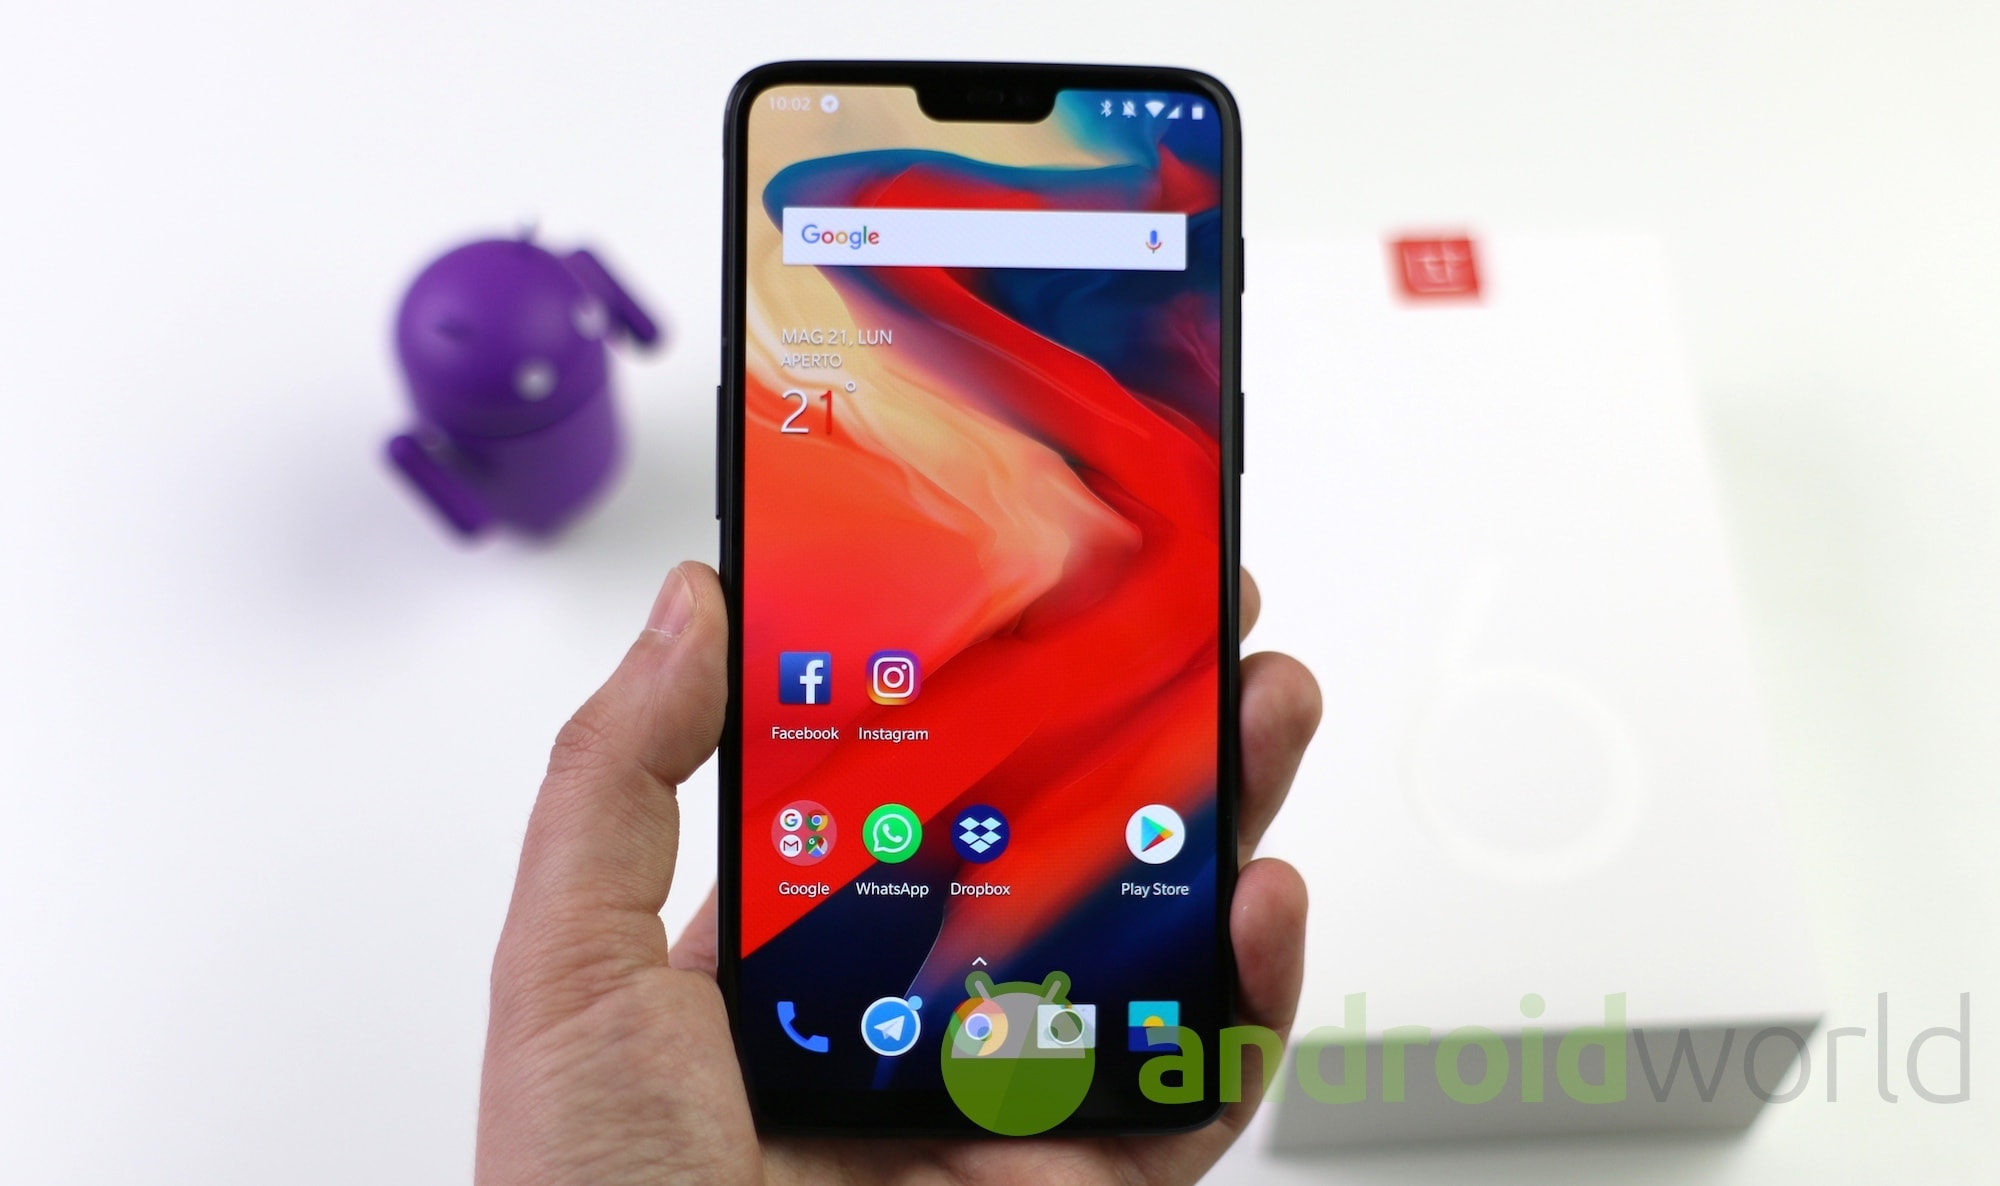 OnePlus Launcher and Google Feed, an impossible love? No, if